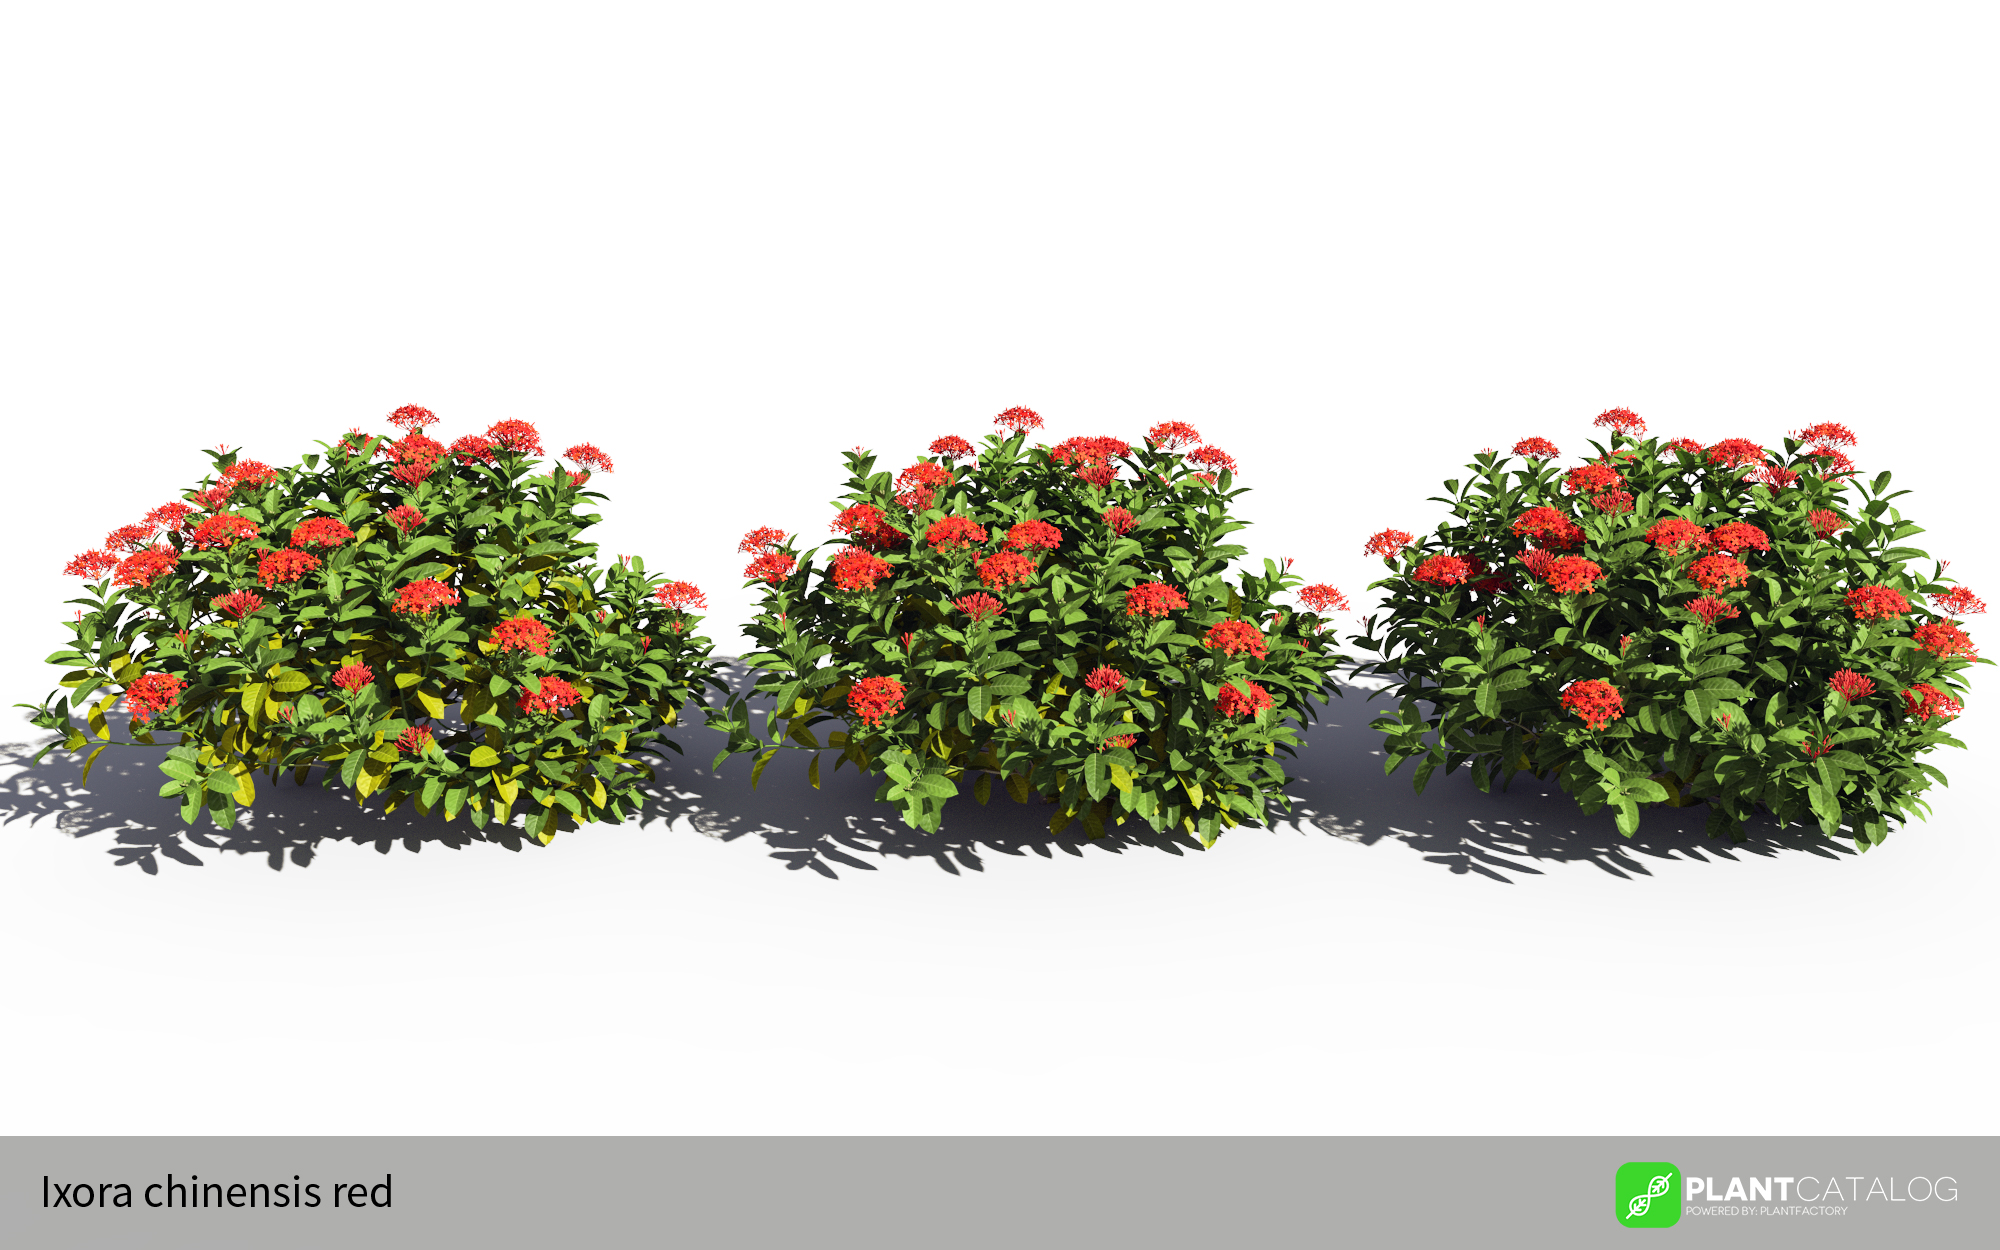 3D model of the Chinese jungle geranium - Ixora chinensis red - from the PlantCatalog, rendered in VUE